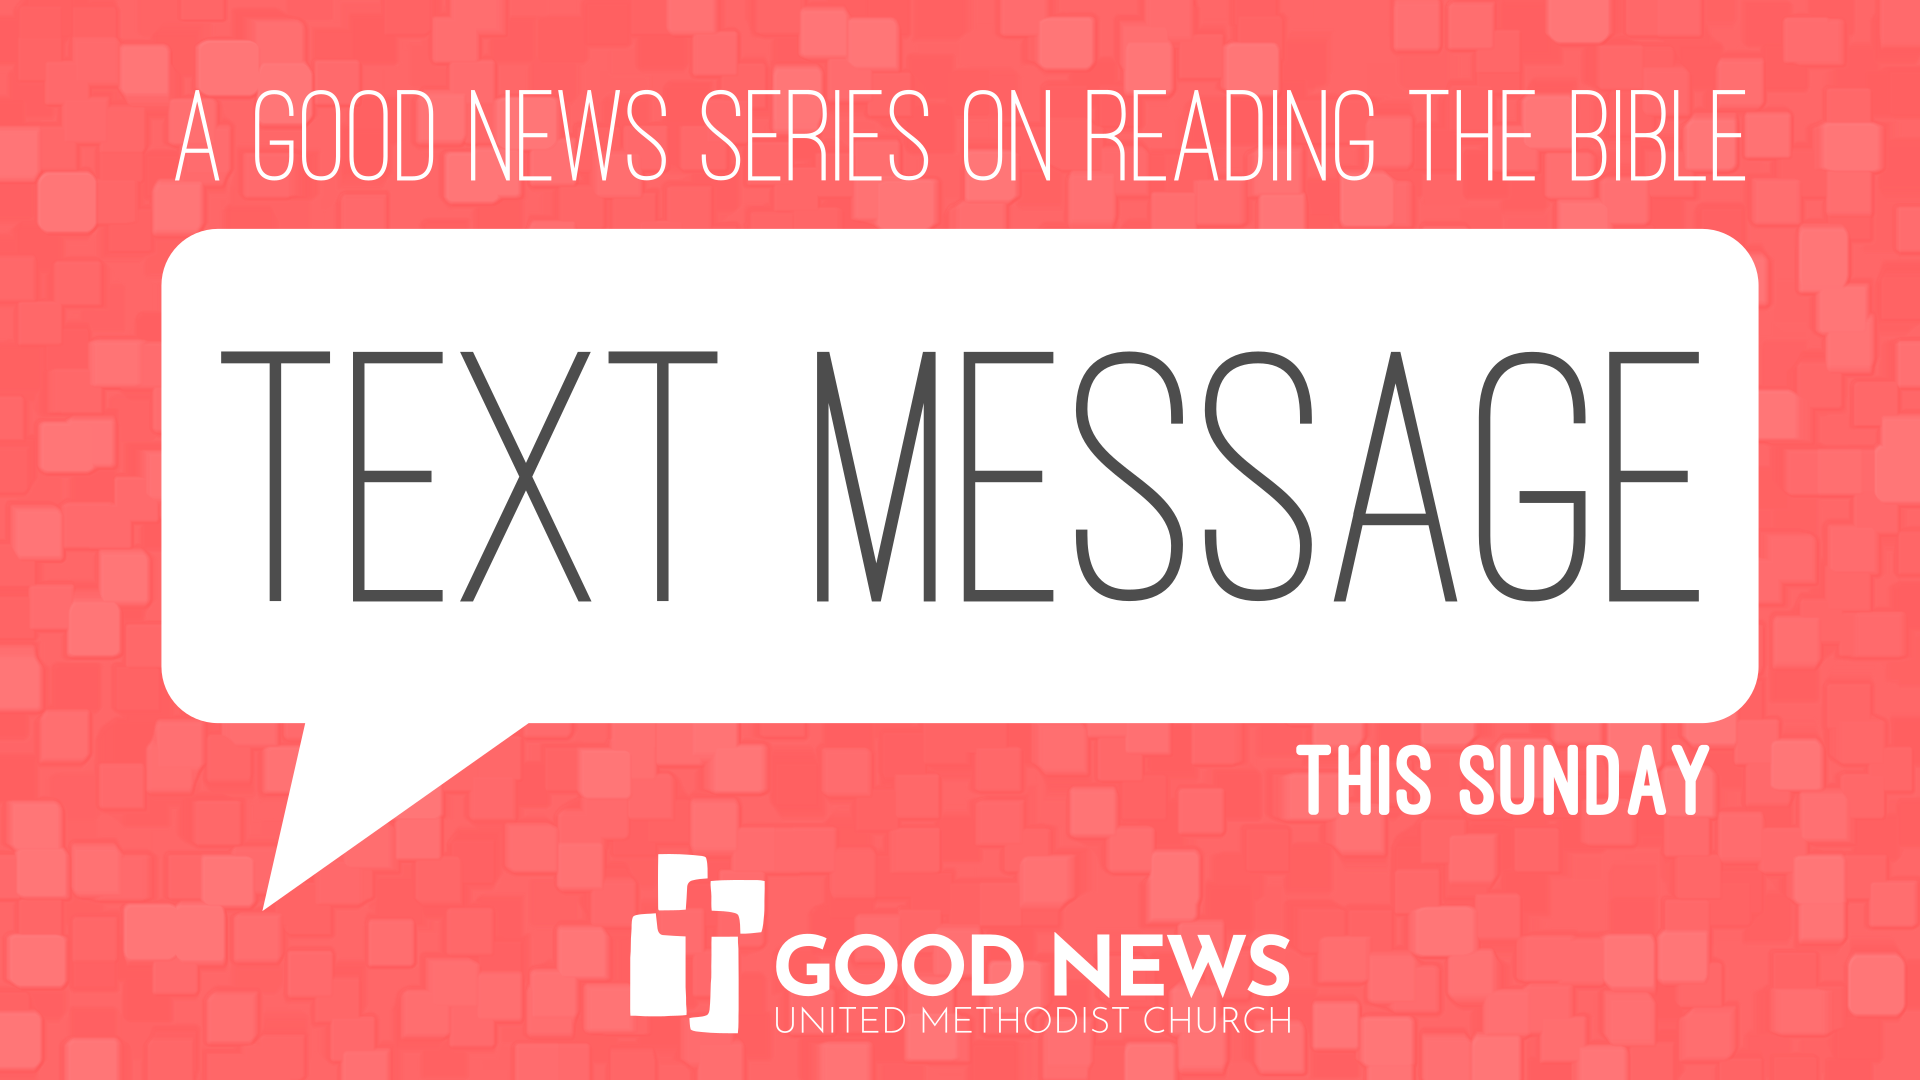 Text Message: This Sunday at Good News